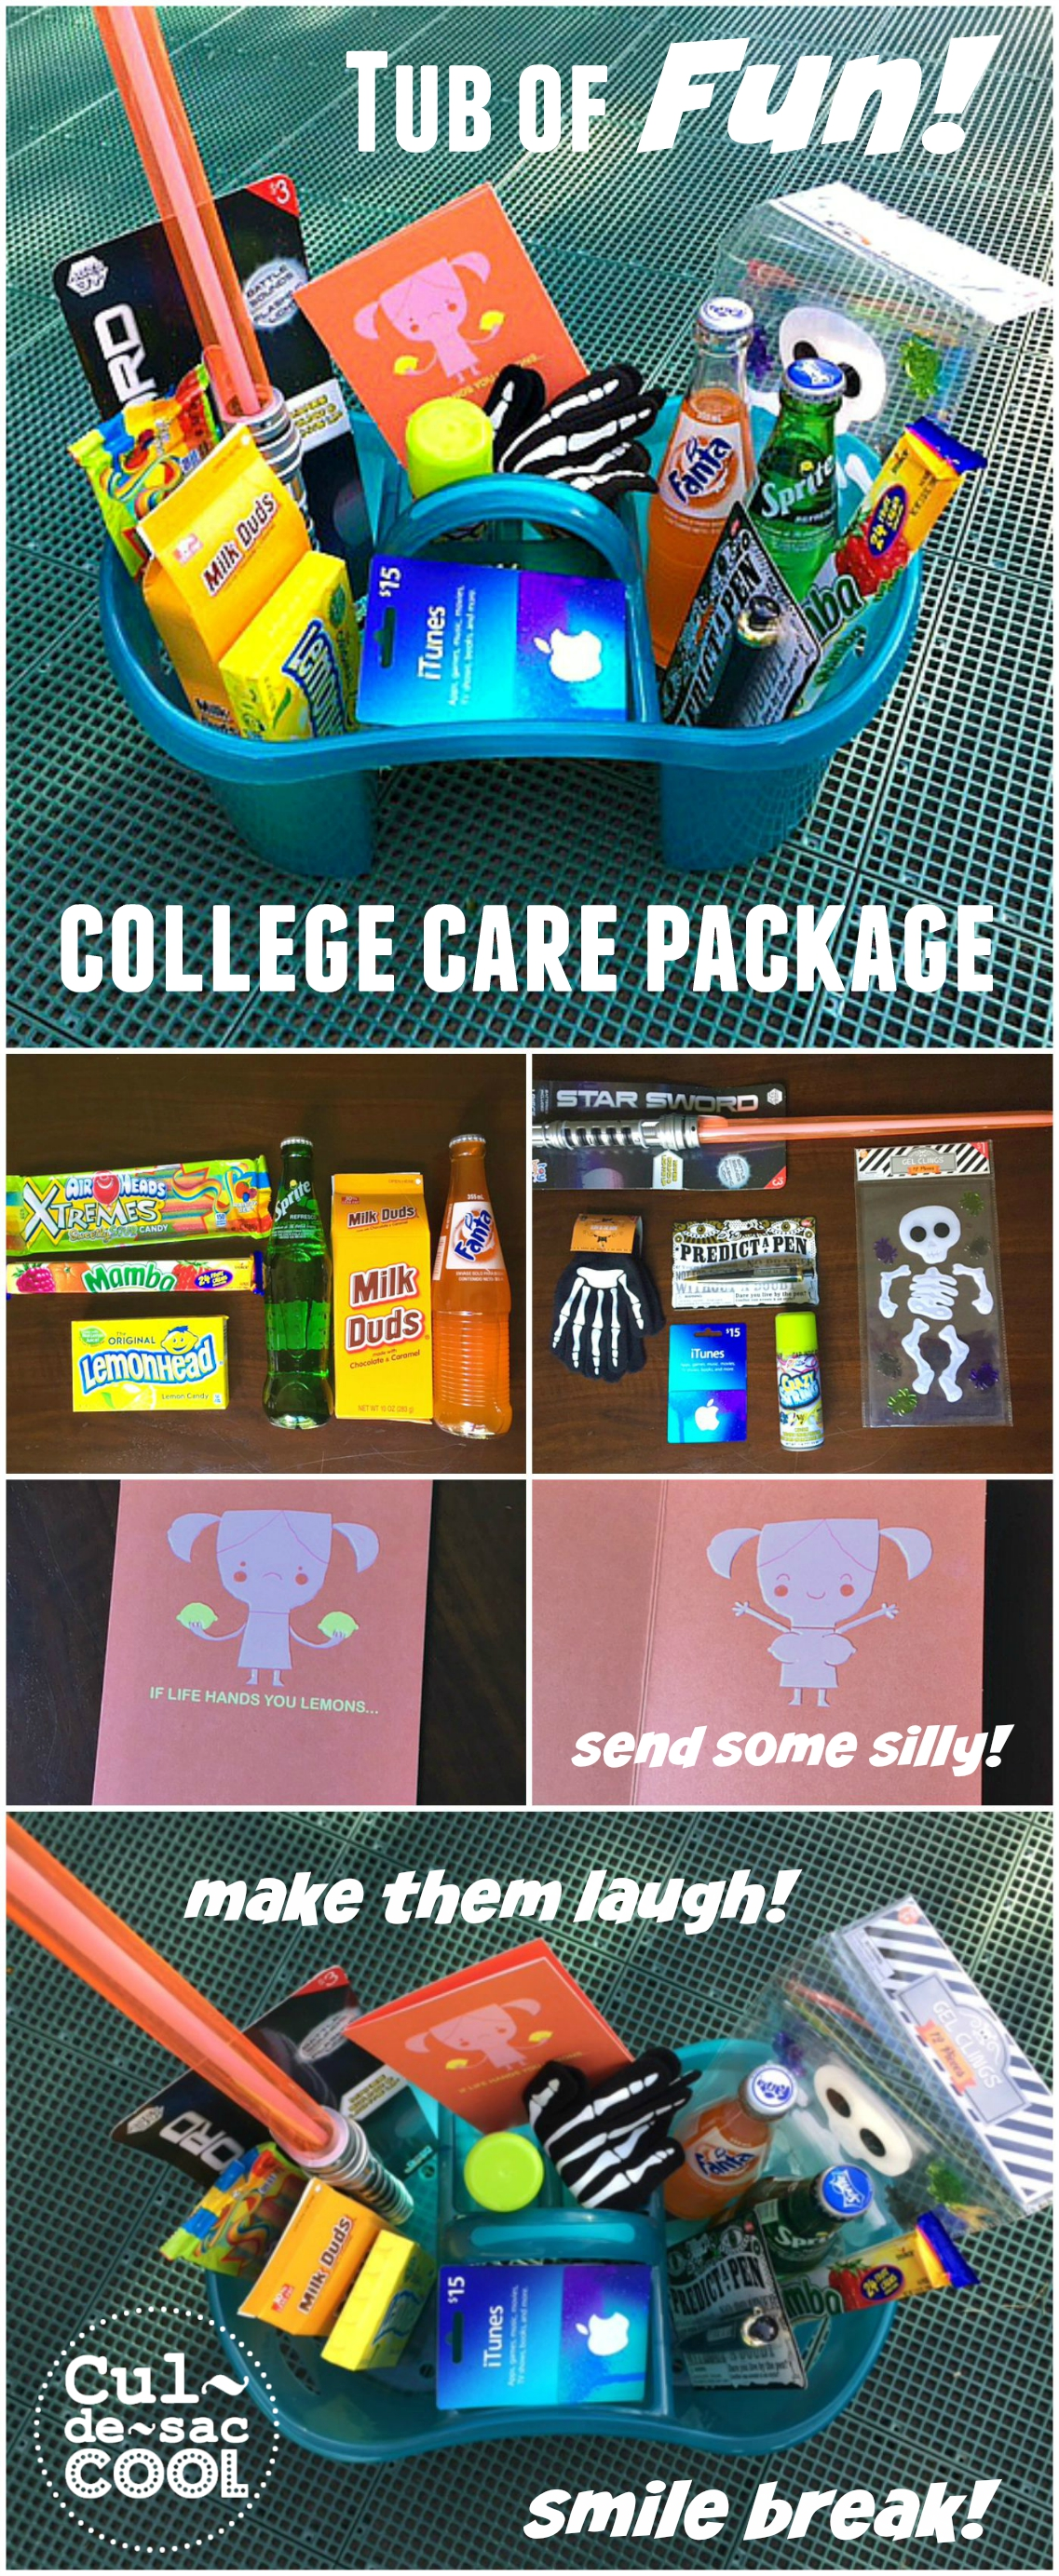 Tub of Fun College Care Package Collage